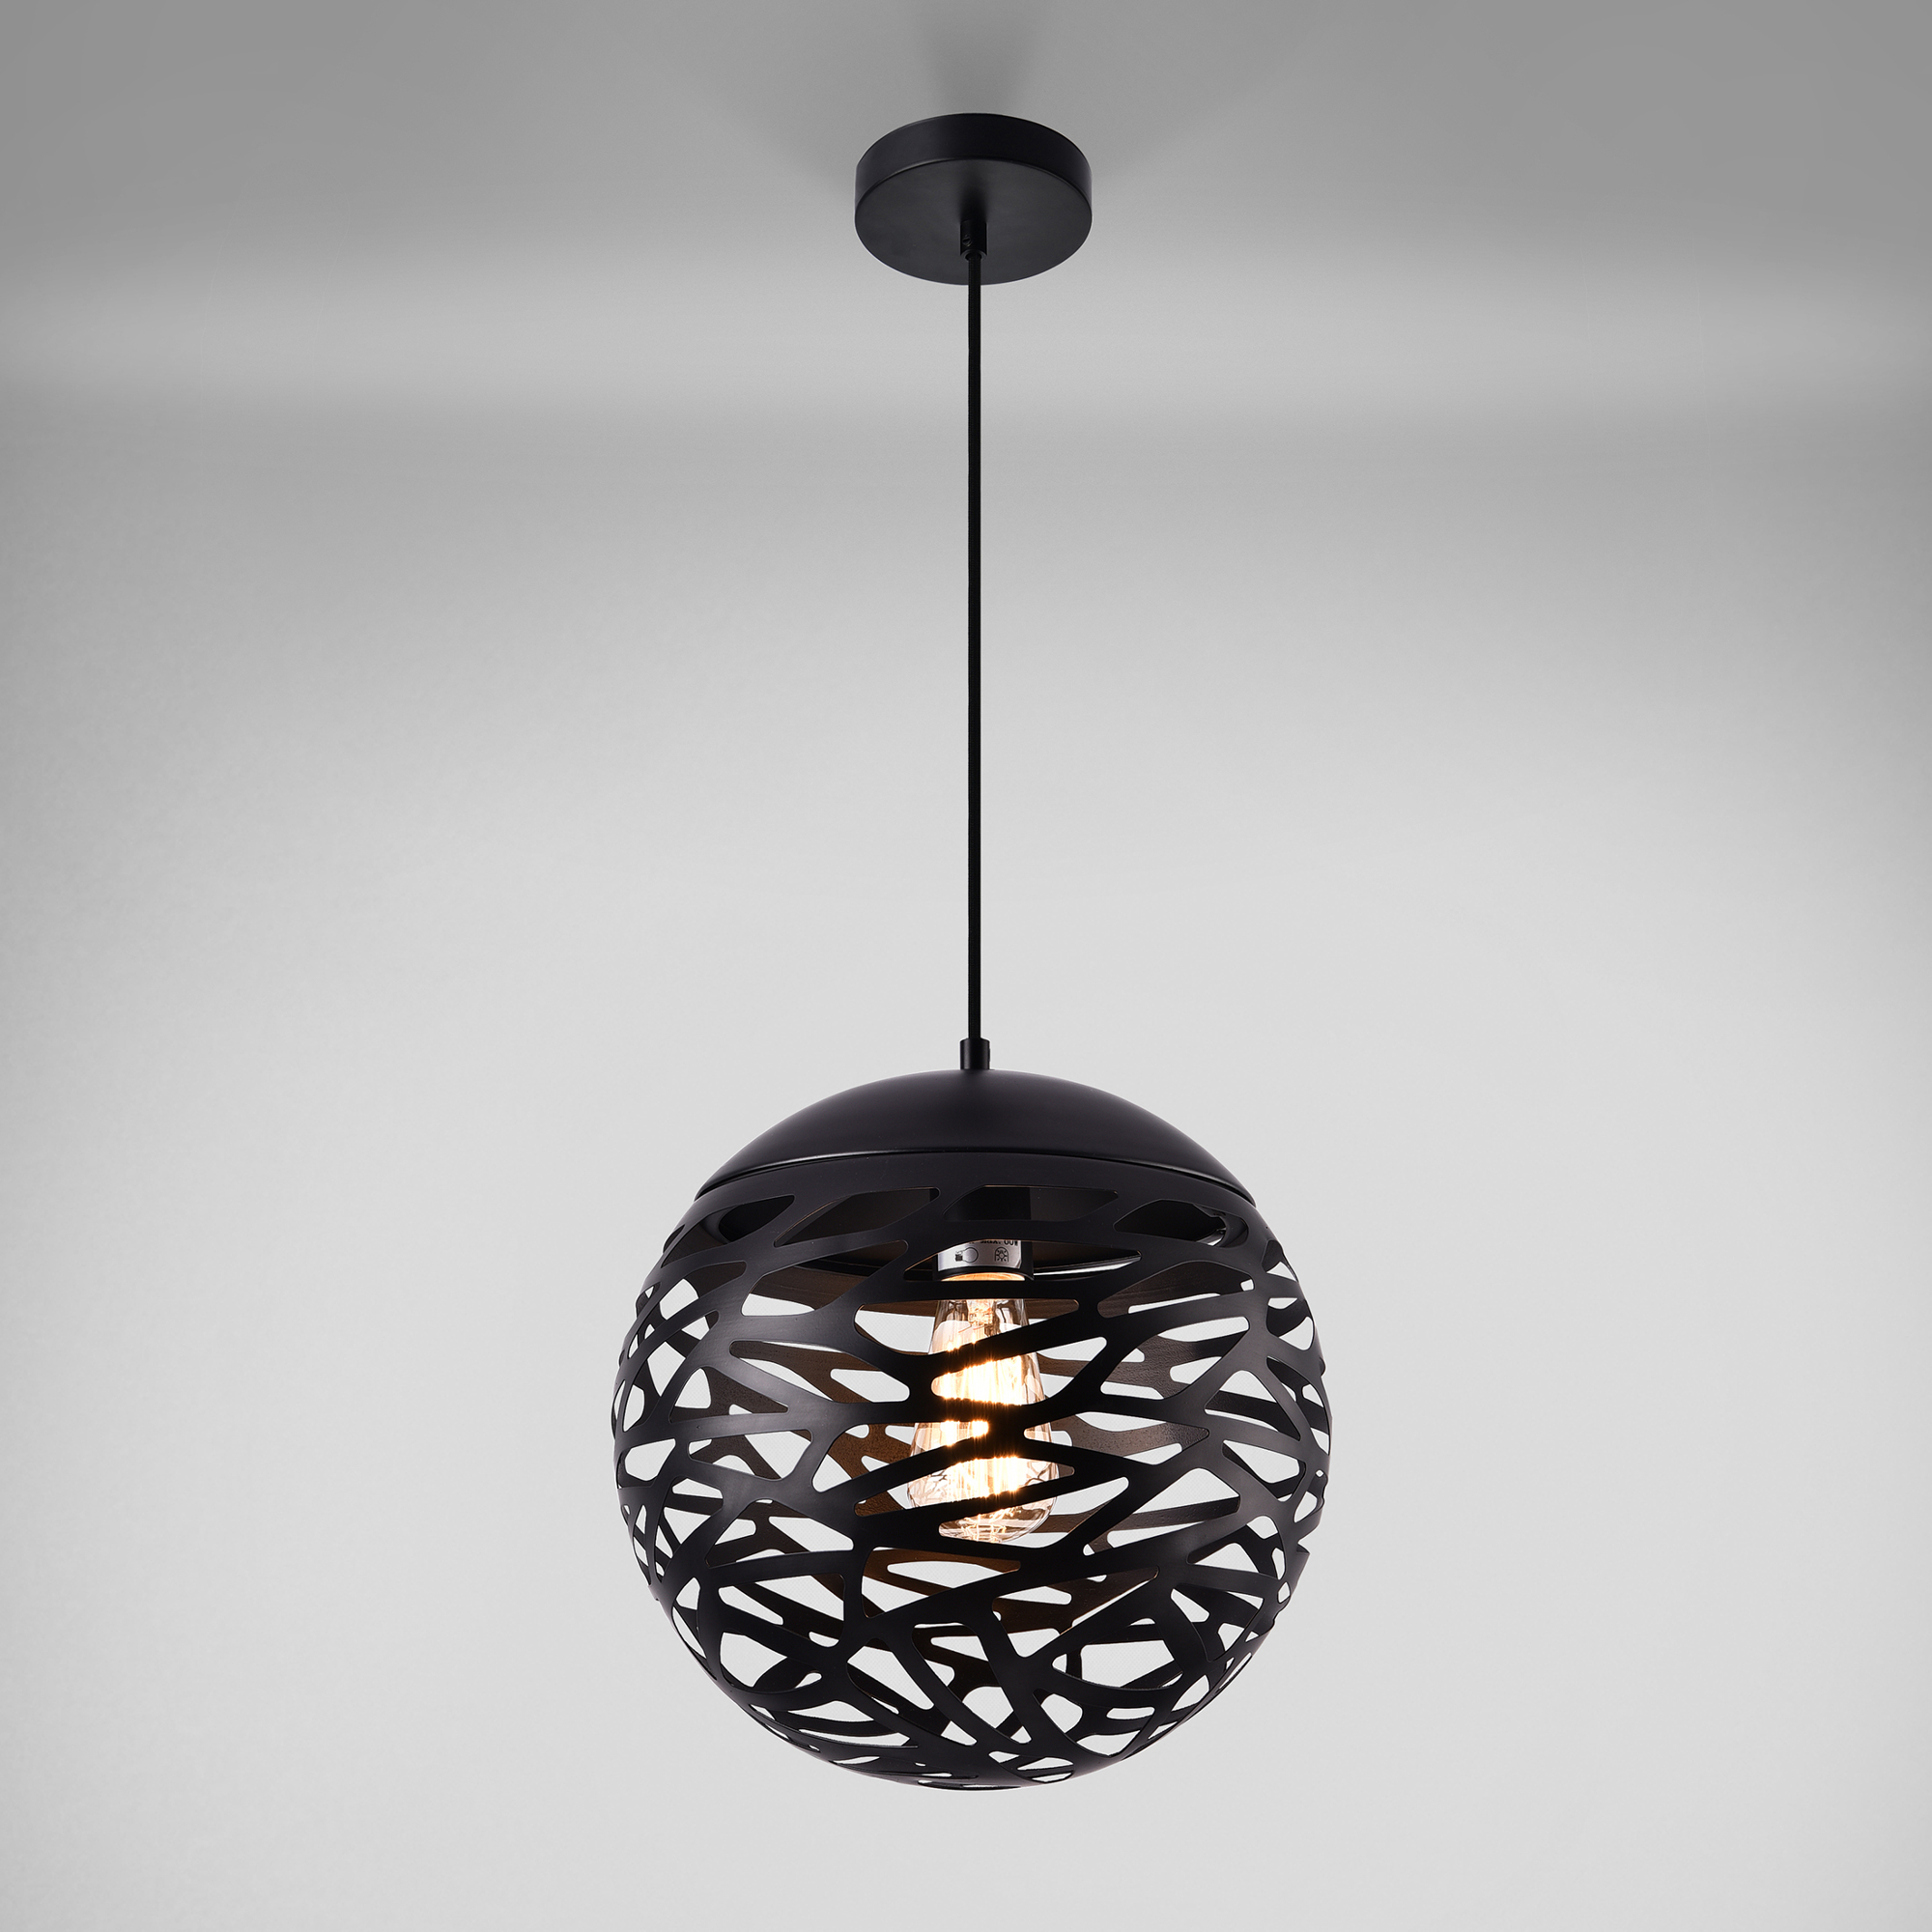 lampe suspension m tal noir plafonnier suspendue lumi re design rond ebay. Black Bedroom Furniture Sets. Home Design Ideas